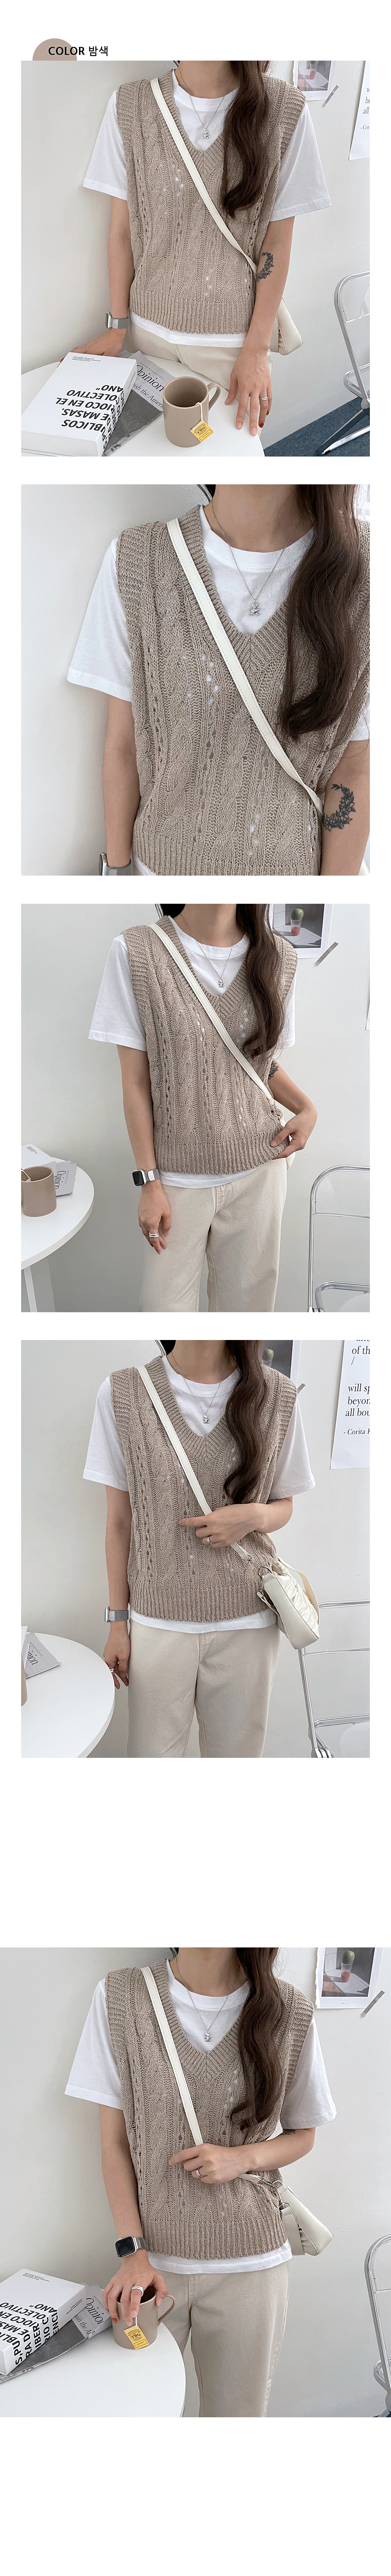 Eve Twisted Buckle Crop Vest